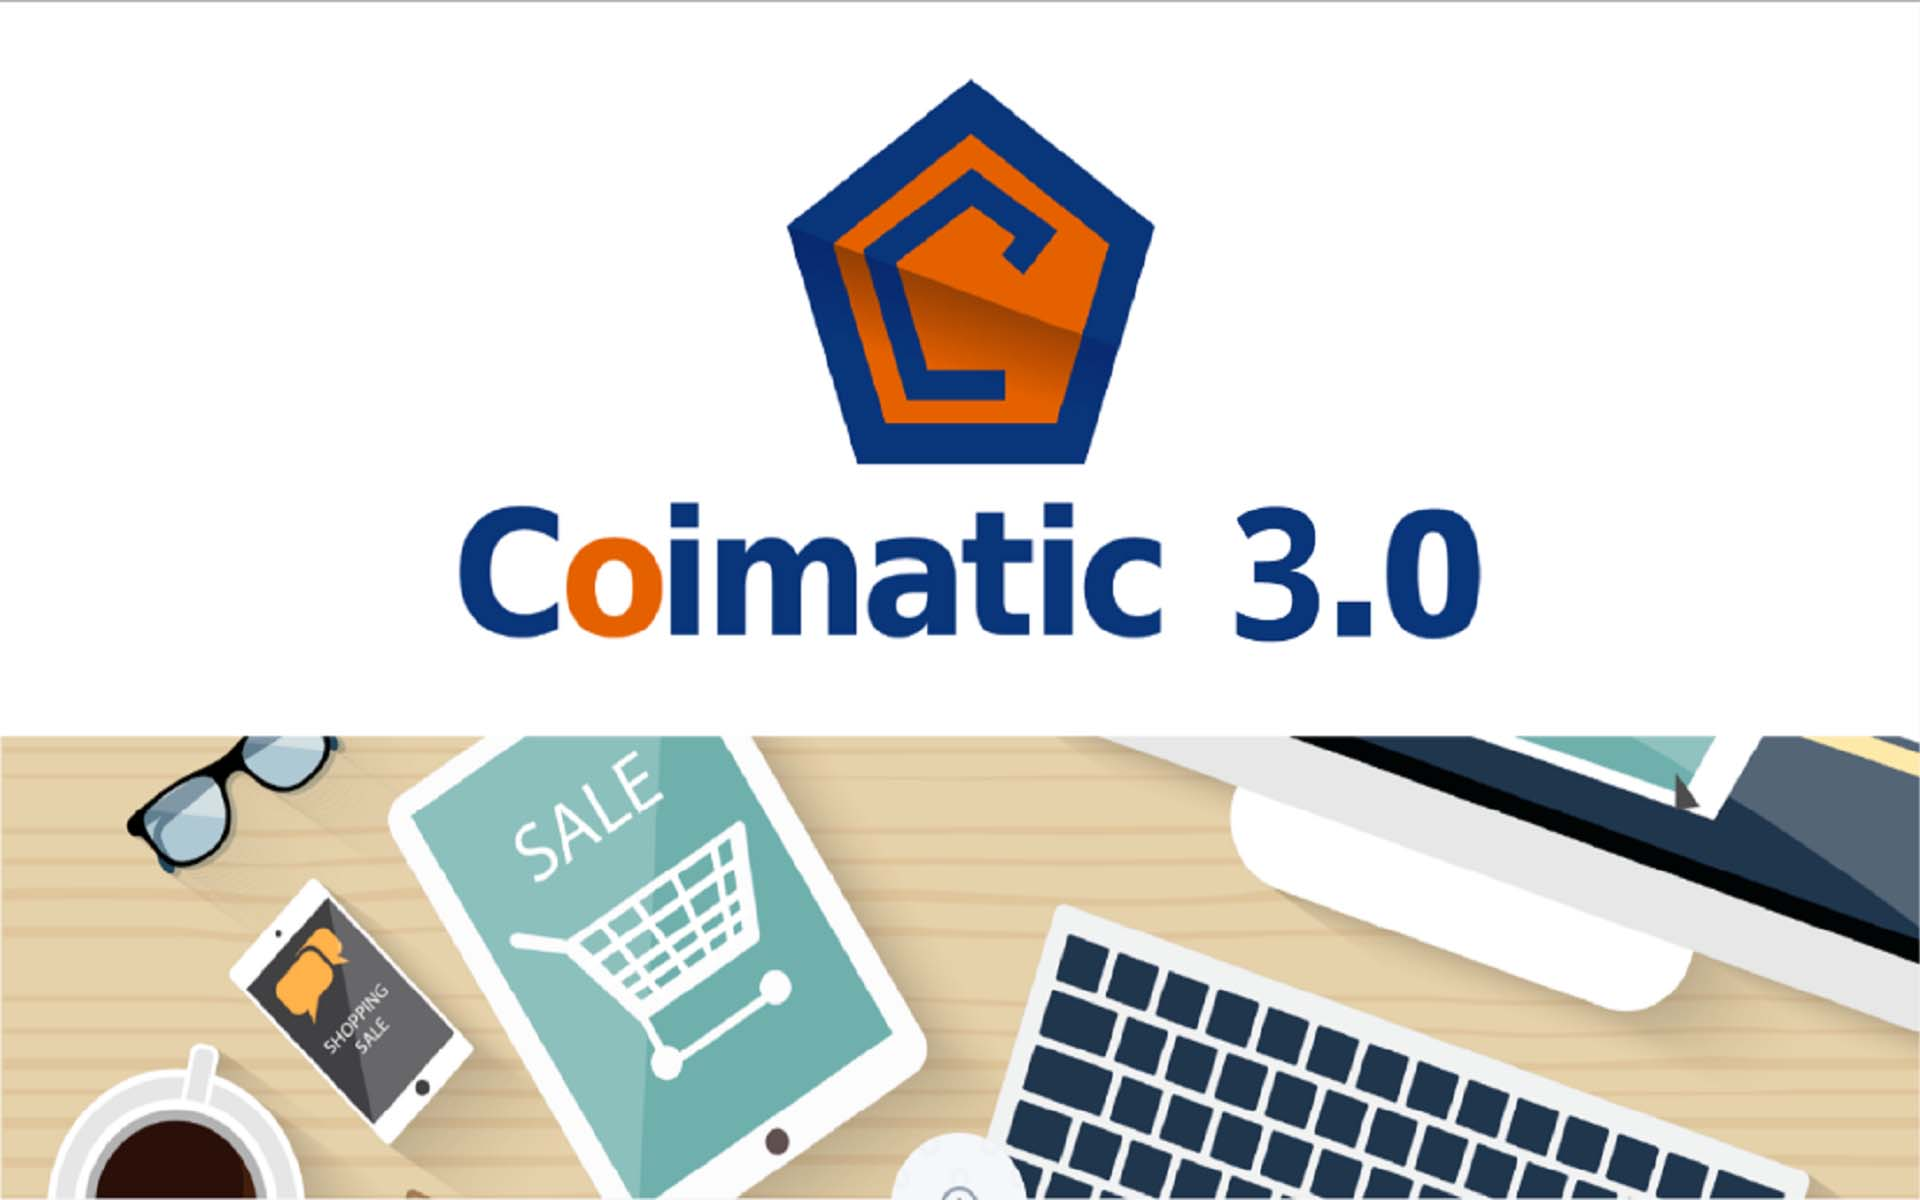 Coimatic 2.0 Swapping To Coimatic 3.0 Ethereum Token Will Close in 7 Days